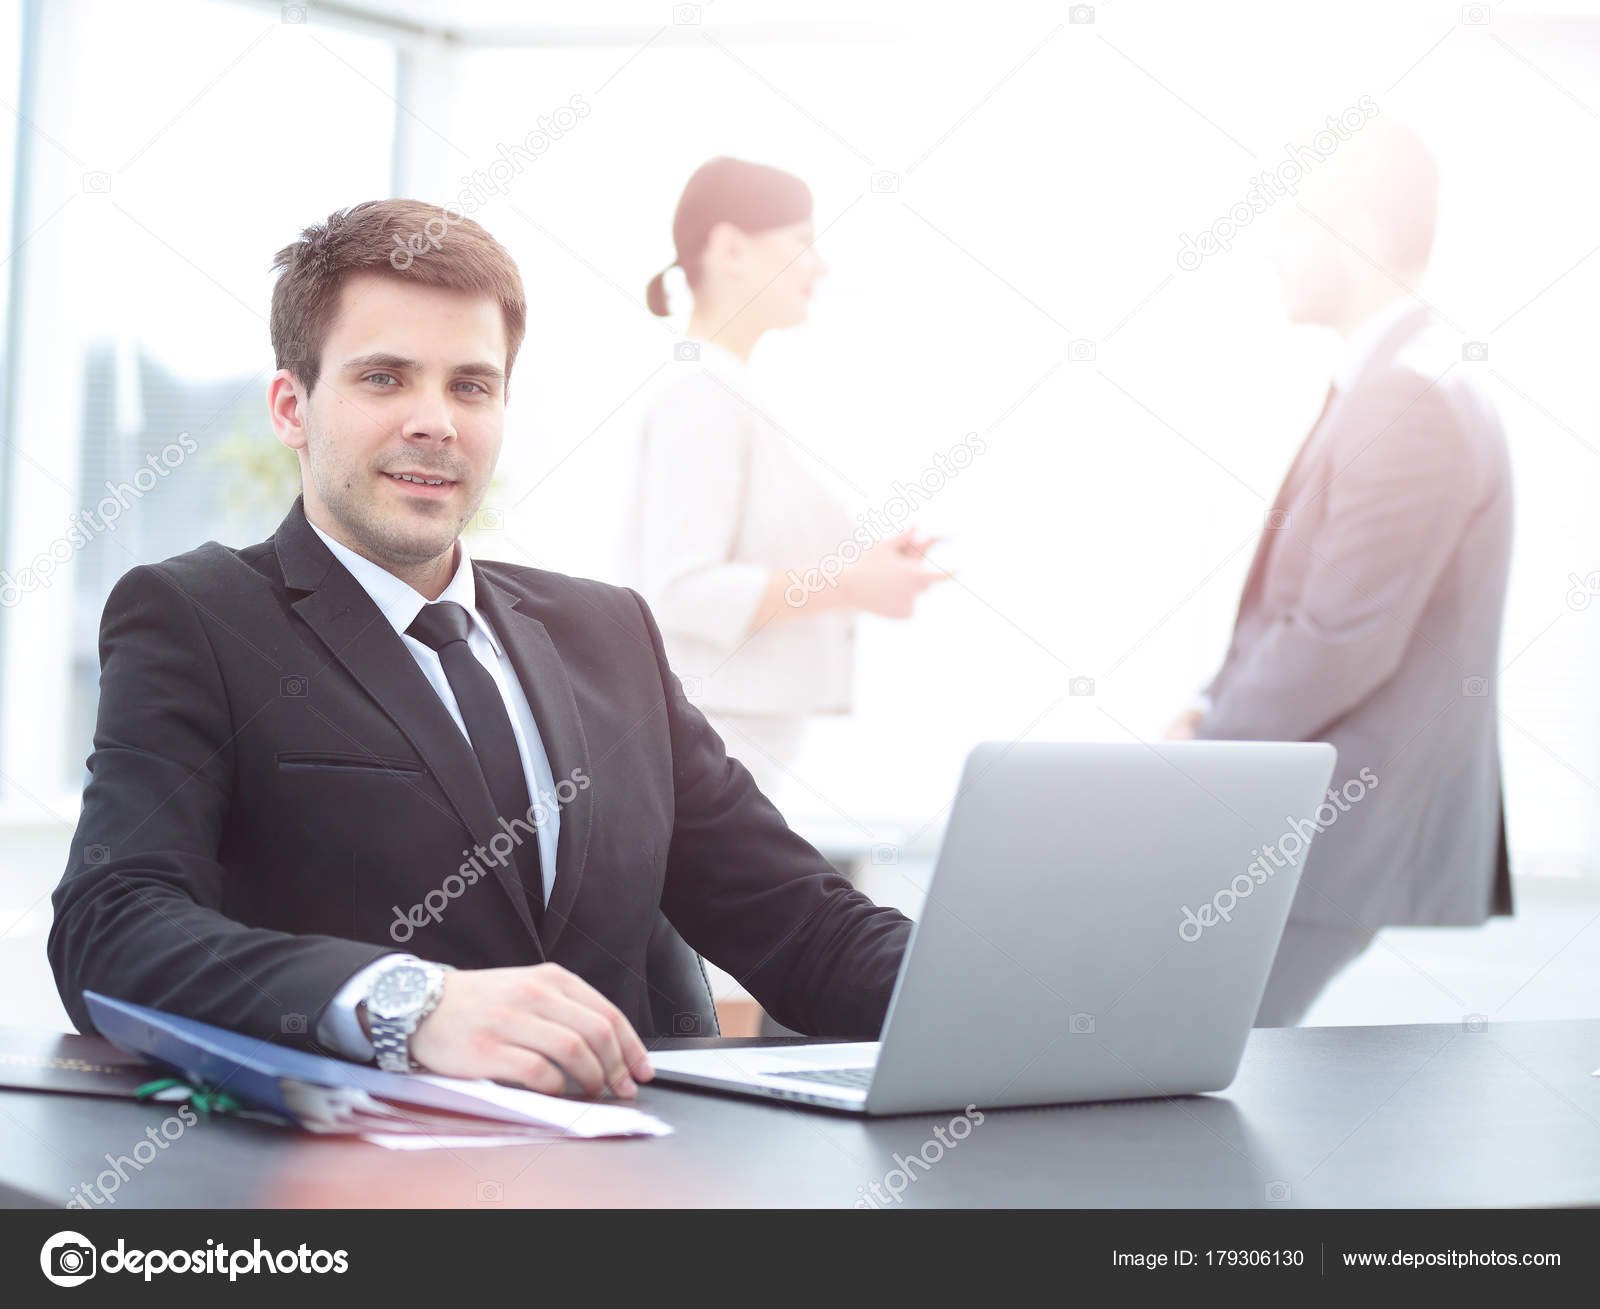 Successful Businessman Sitting Behind A Desk With An Open